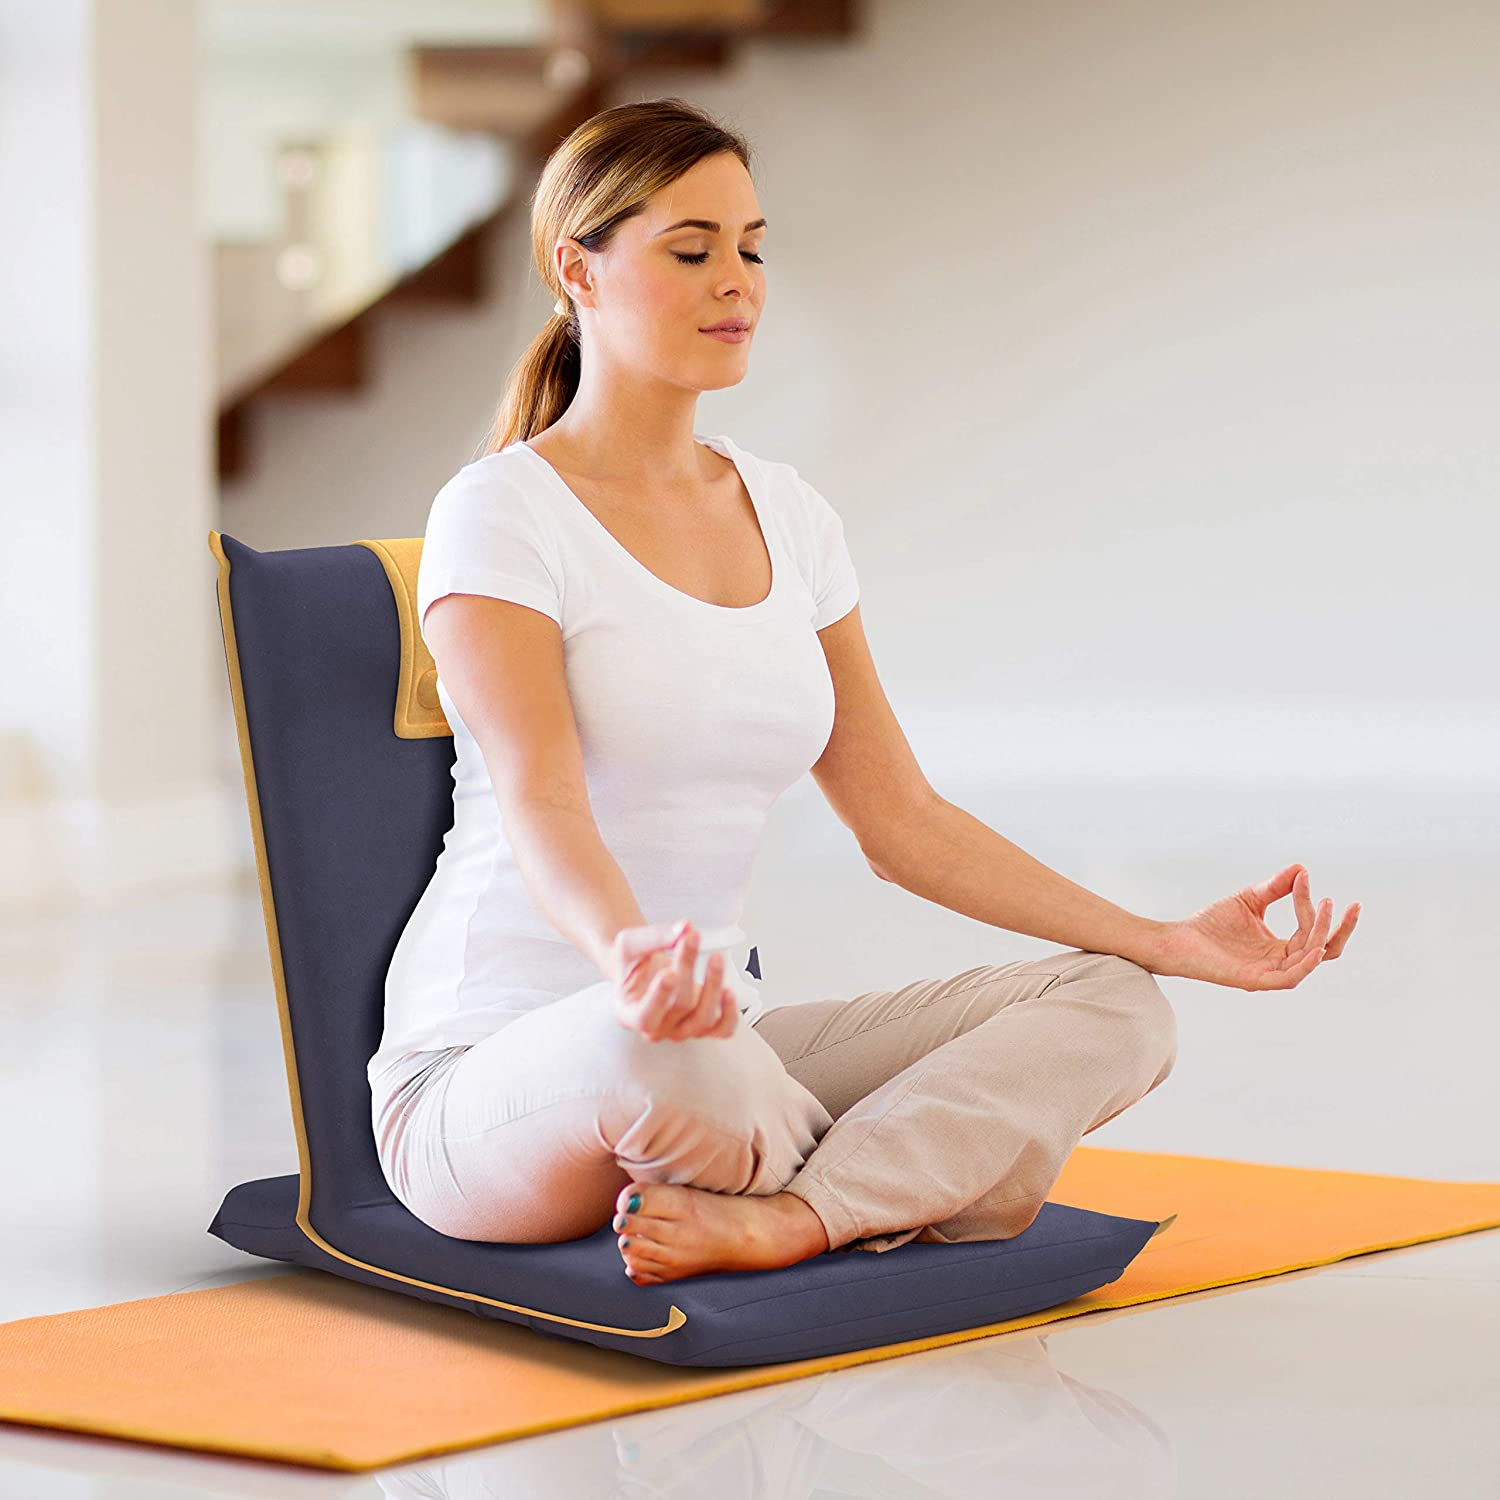 person on a meditation cushion